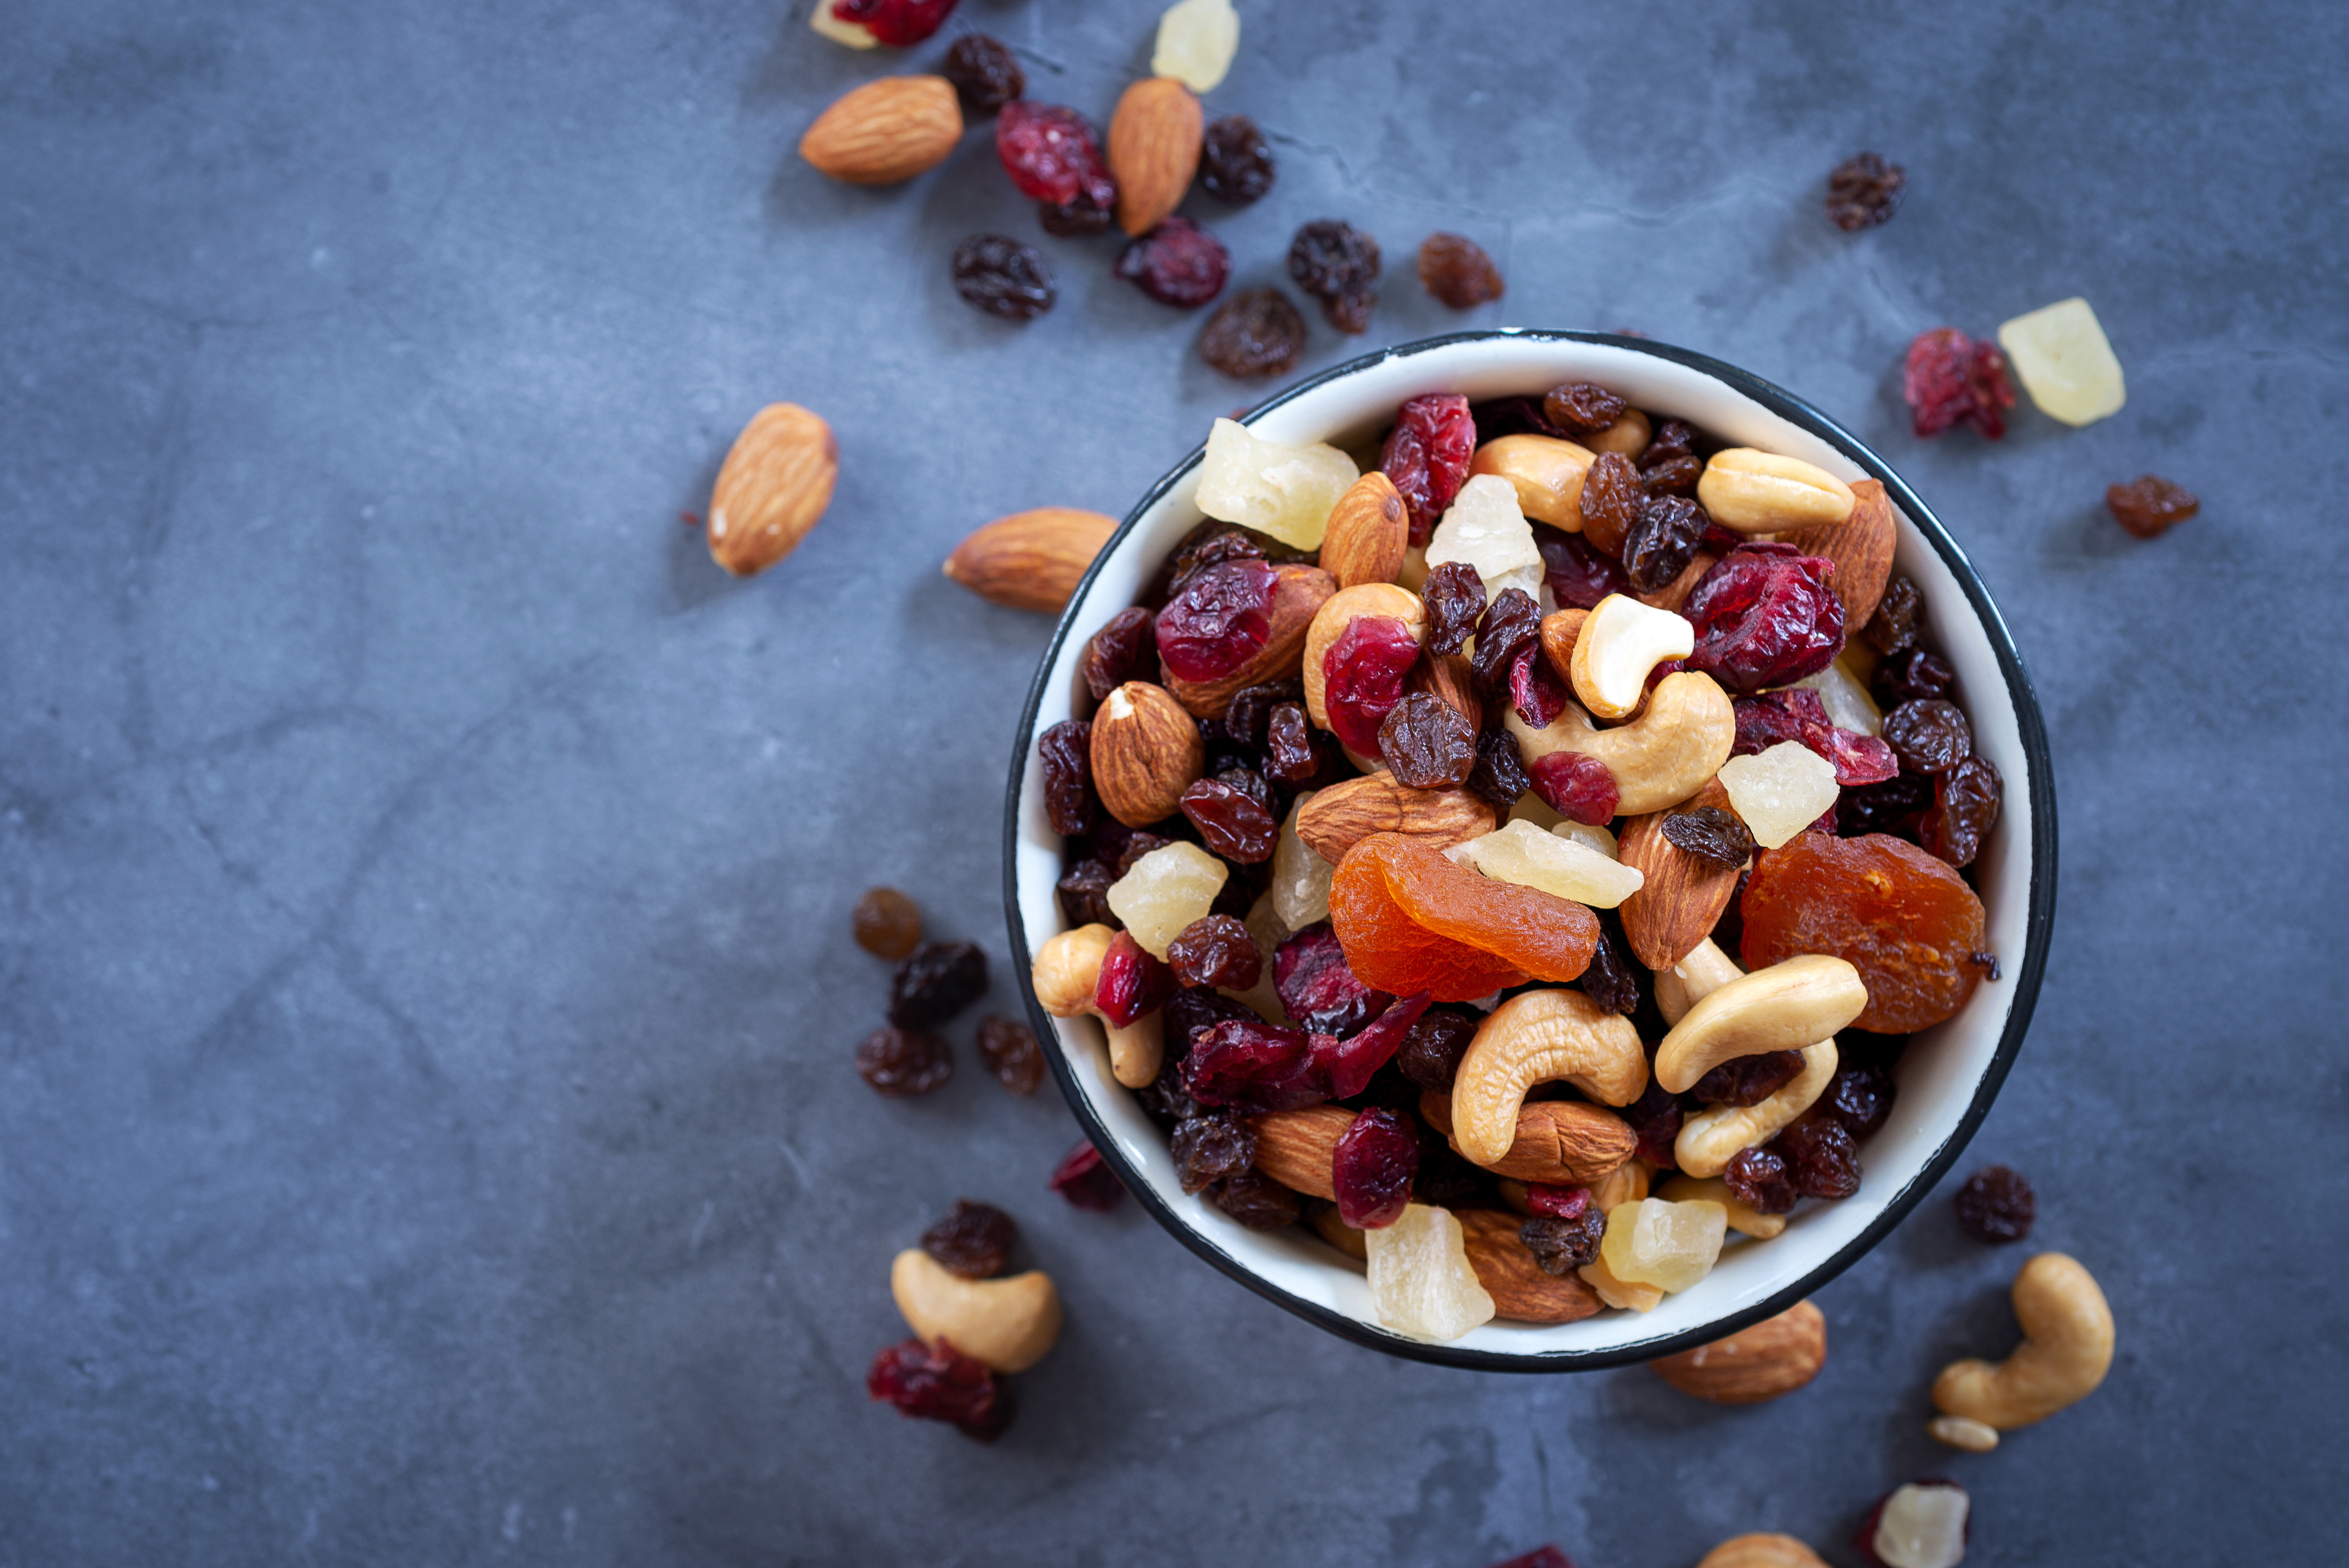 Snack on nuts and seeds to boost your immunity